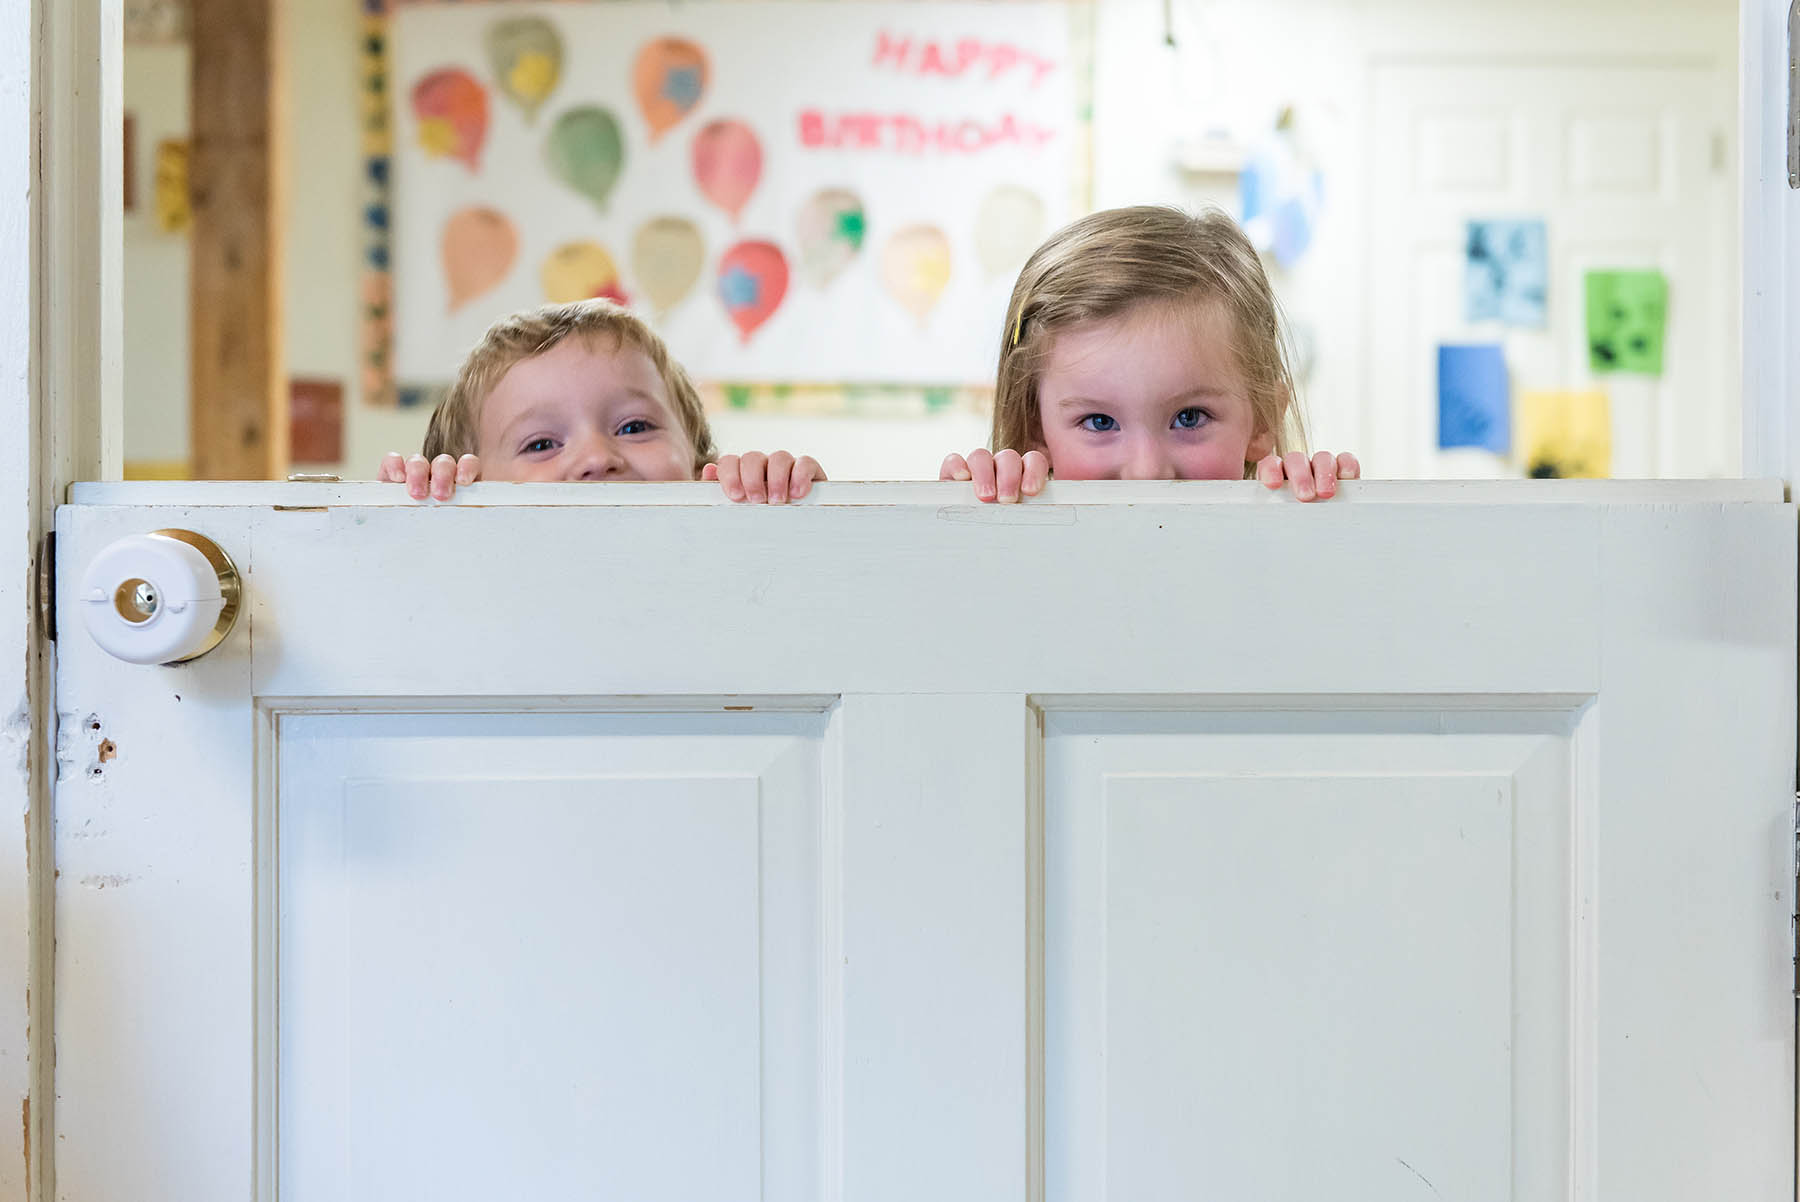 Toddlers peeking over door